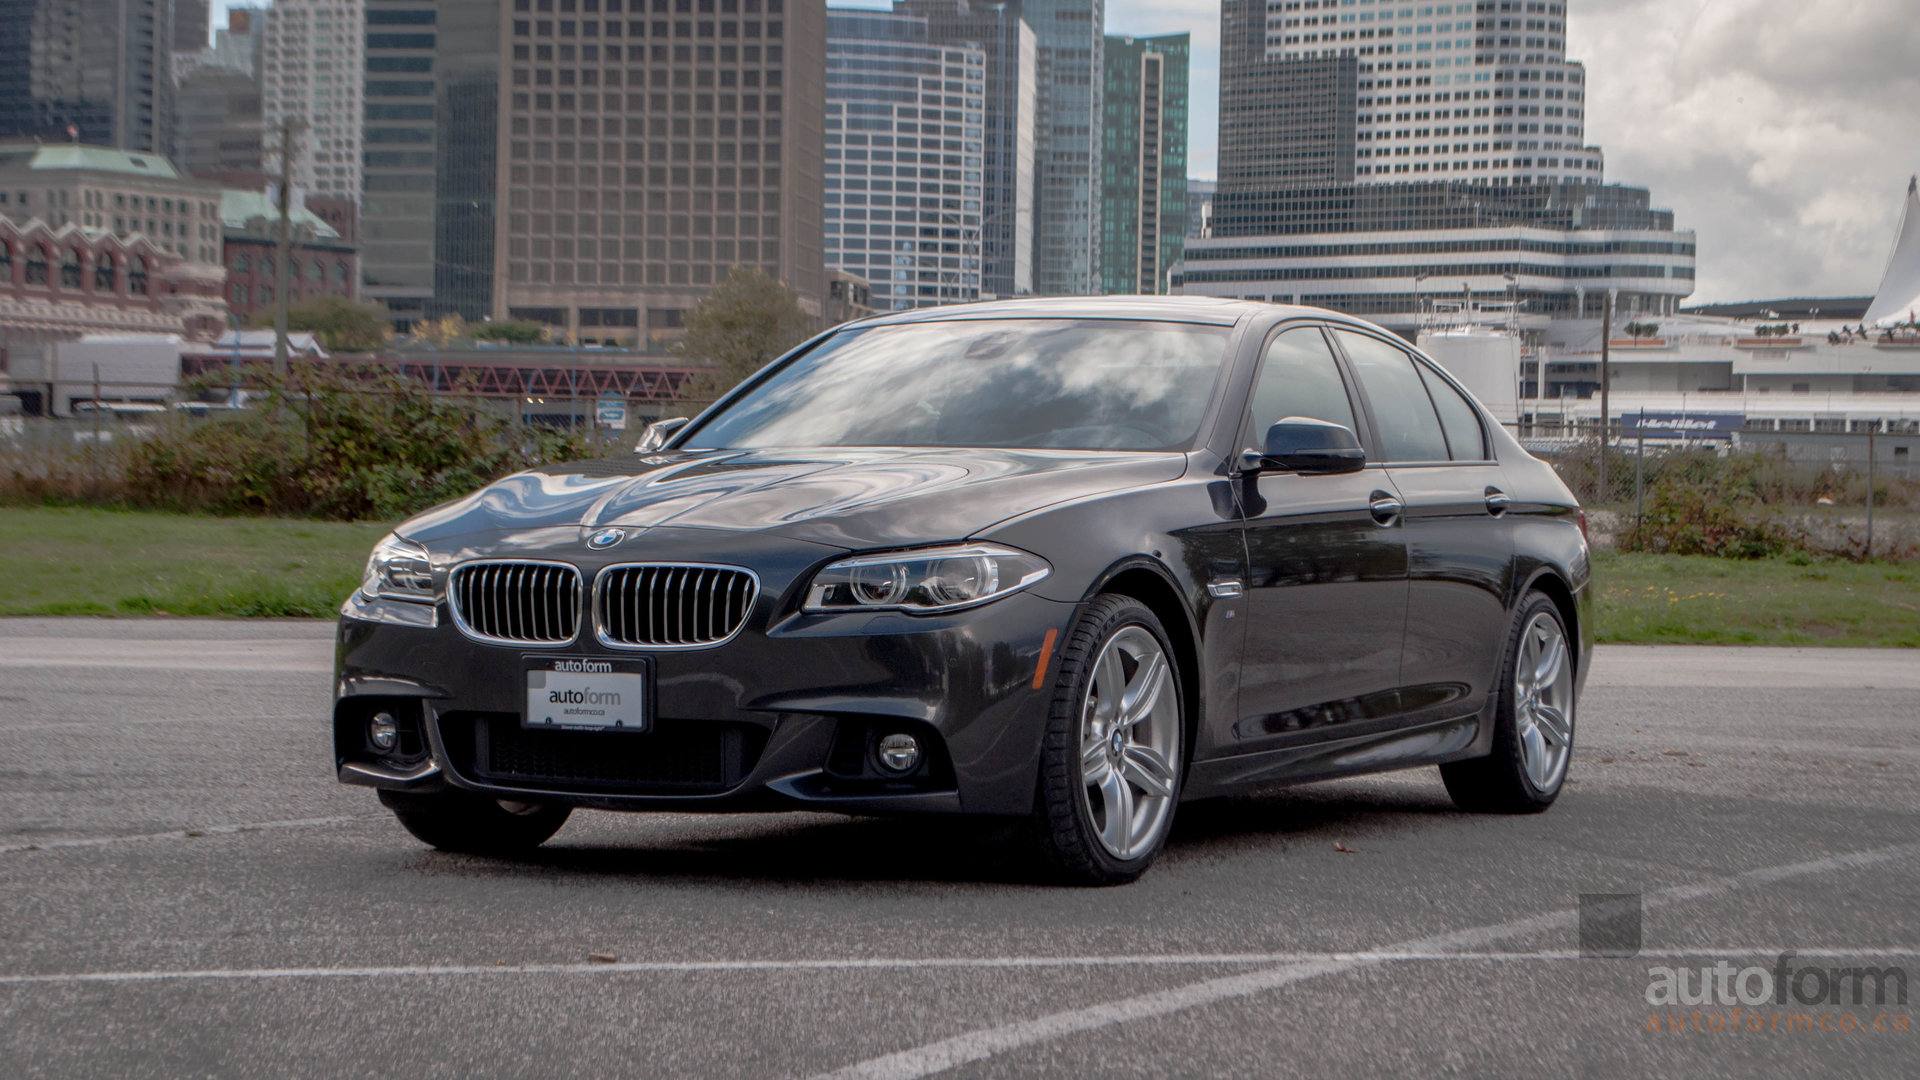 2014 Bmw 535d Xdrive M Sport For Sale 71194 Mcg